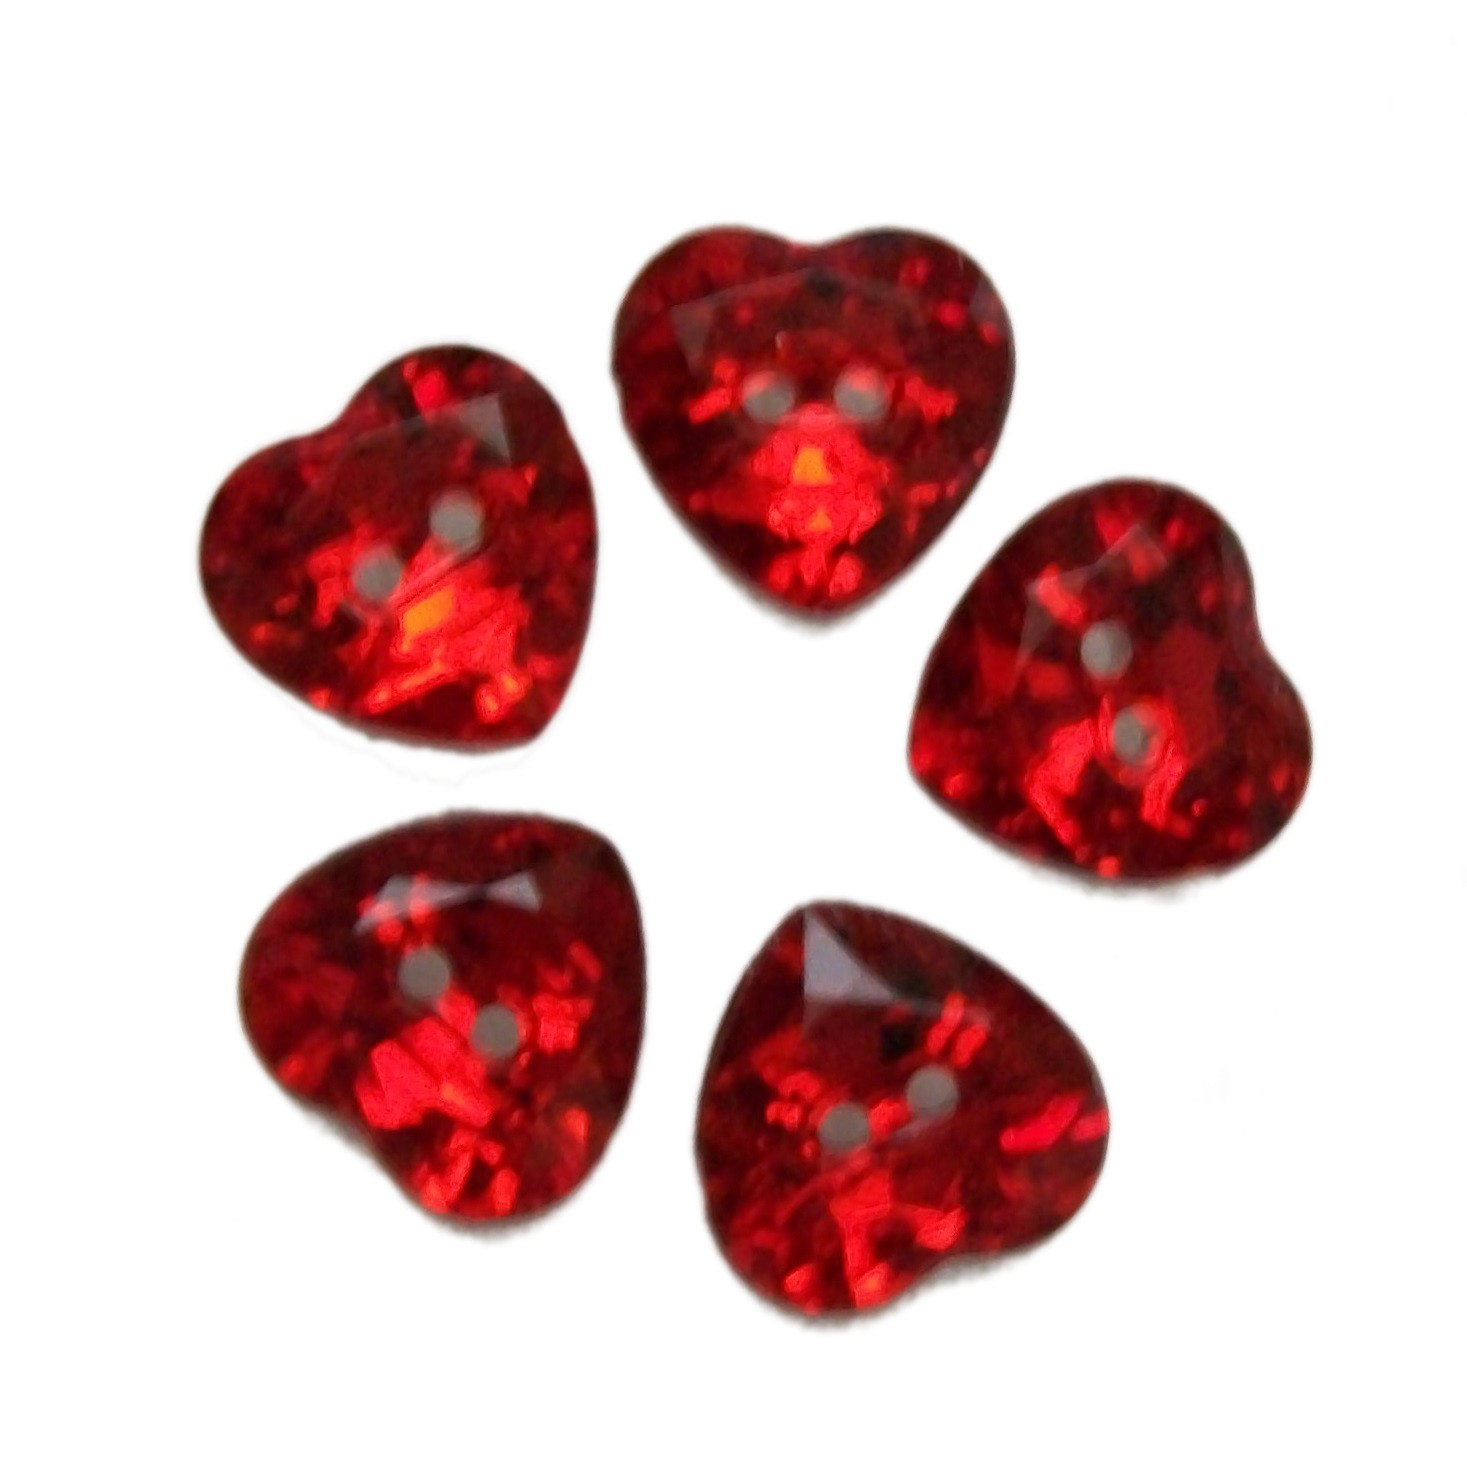 Acrylic Crystal Effect Heart Shape Buttons 20mm Red Pack of 5